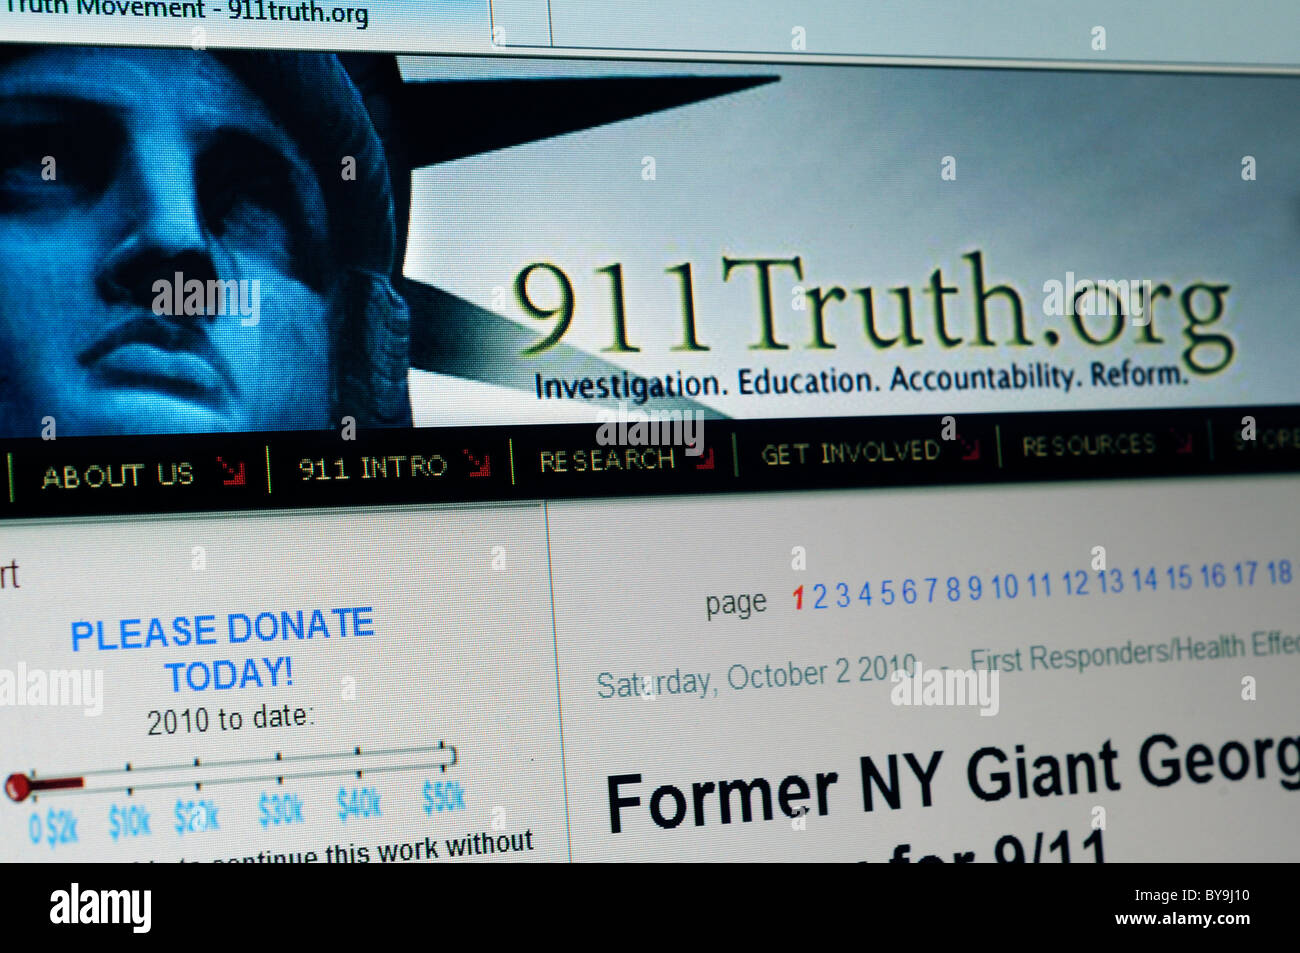 The 911 Truth website - Stock Image